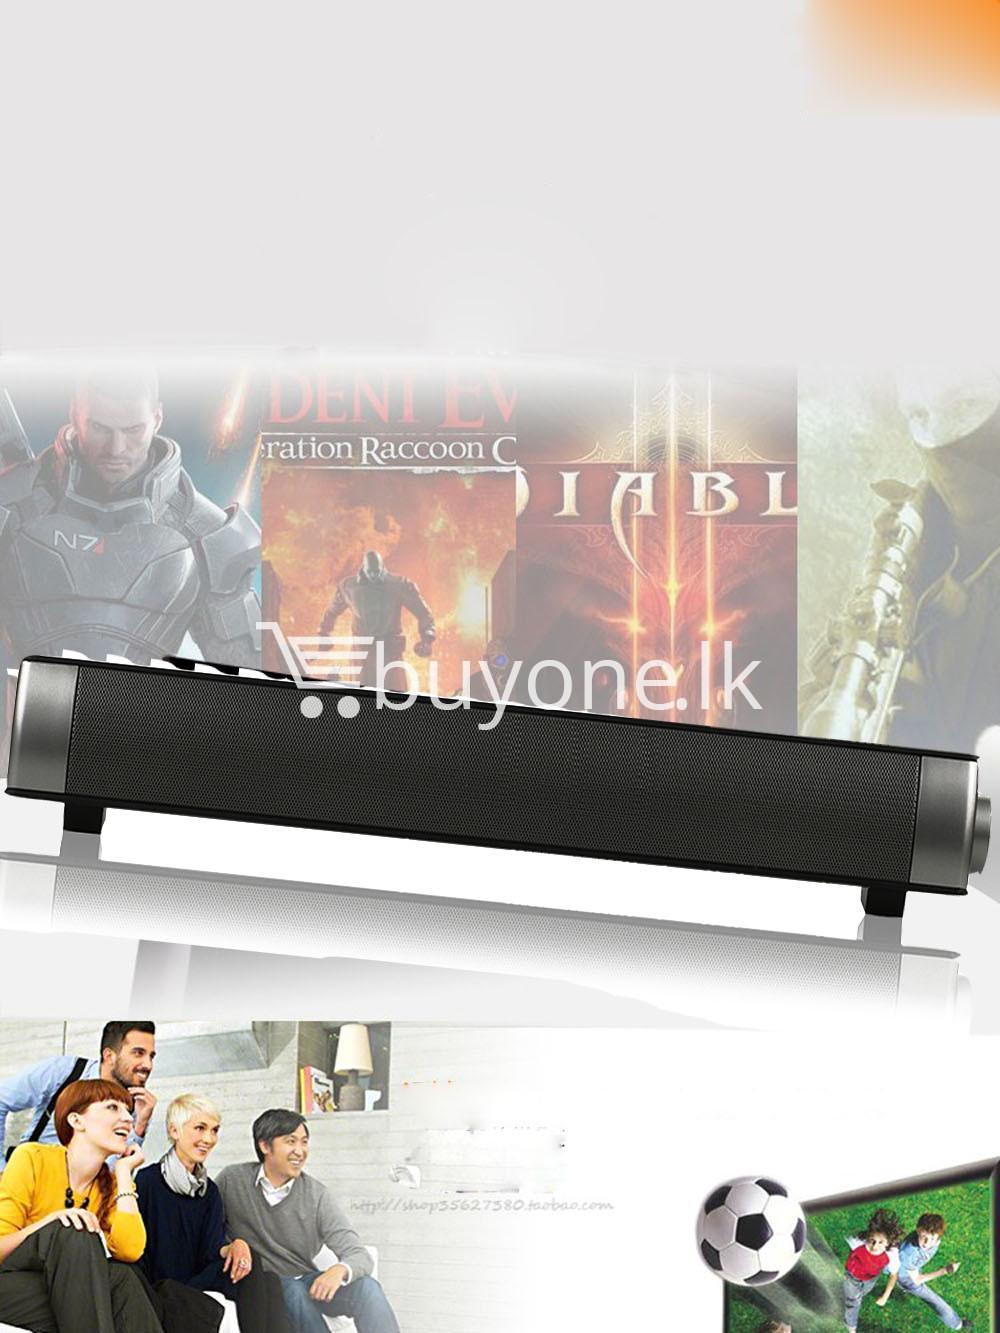 music apollo wireless slim soundbar hifi box bluetooth subwoofer boombox speaker for tv pc electronics special best offer buy one lk sri lanka 88584 - Music Apollo Wireless Slim Soundbar HIFI Box Bluetooth Subwoofer Boombox Speaker FOR TV PC